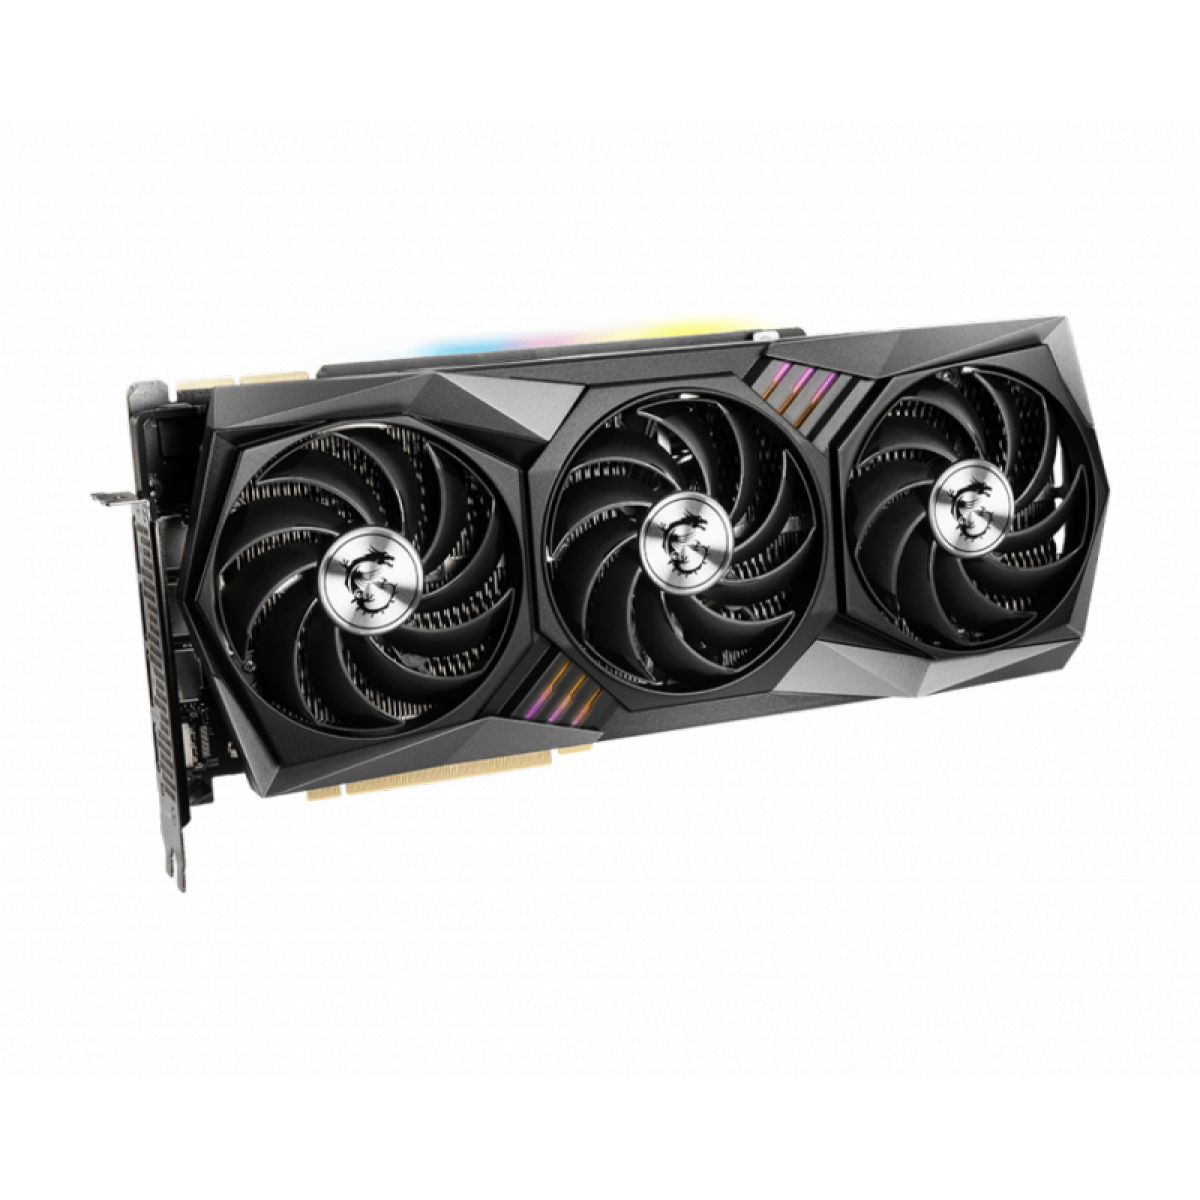 Placa de Vídeo MSI, GeForce, RTX 3090 Gaming Trio, 24GB, GDDR6X, 384Bit